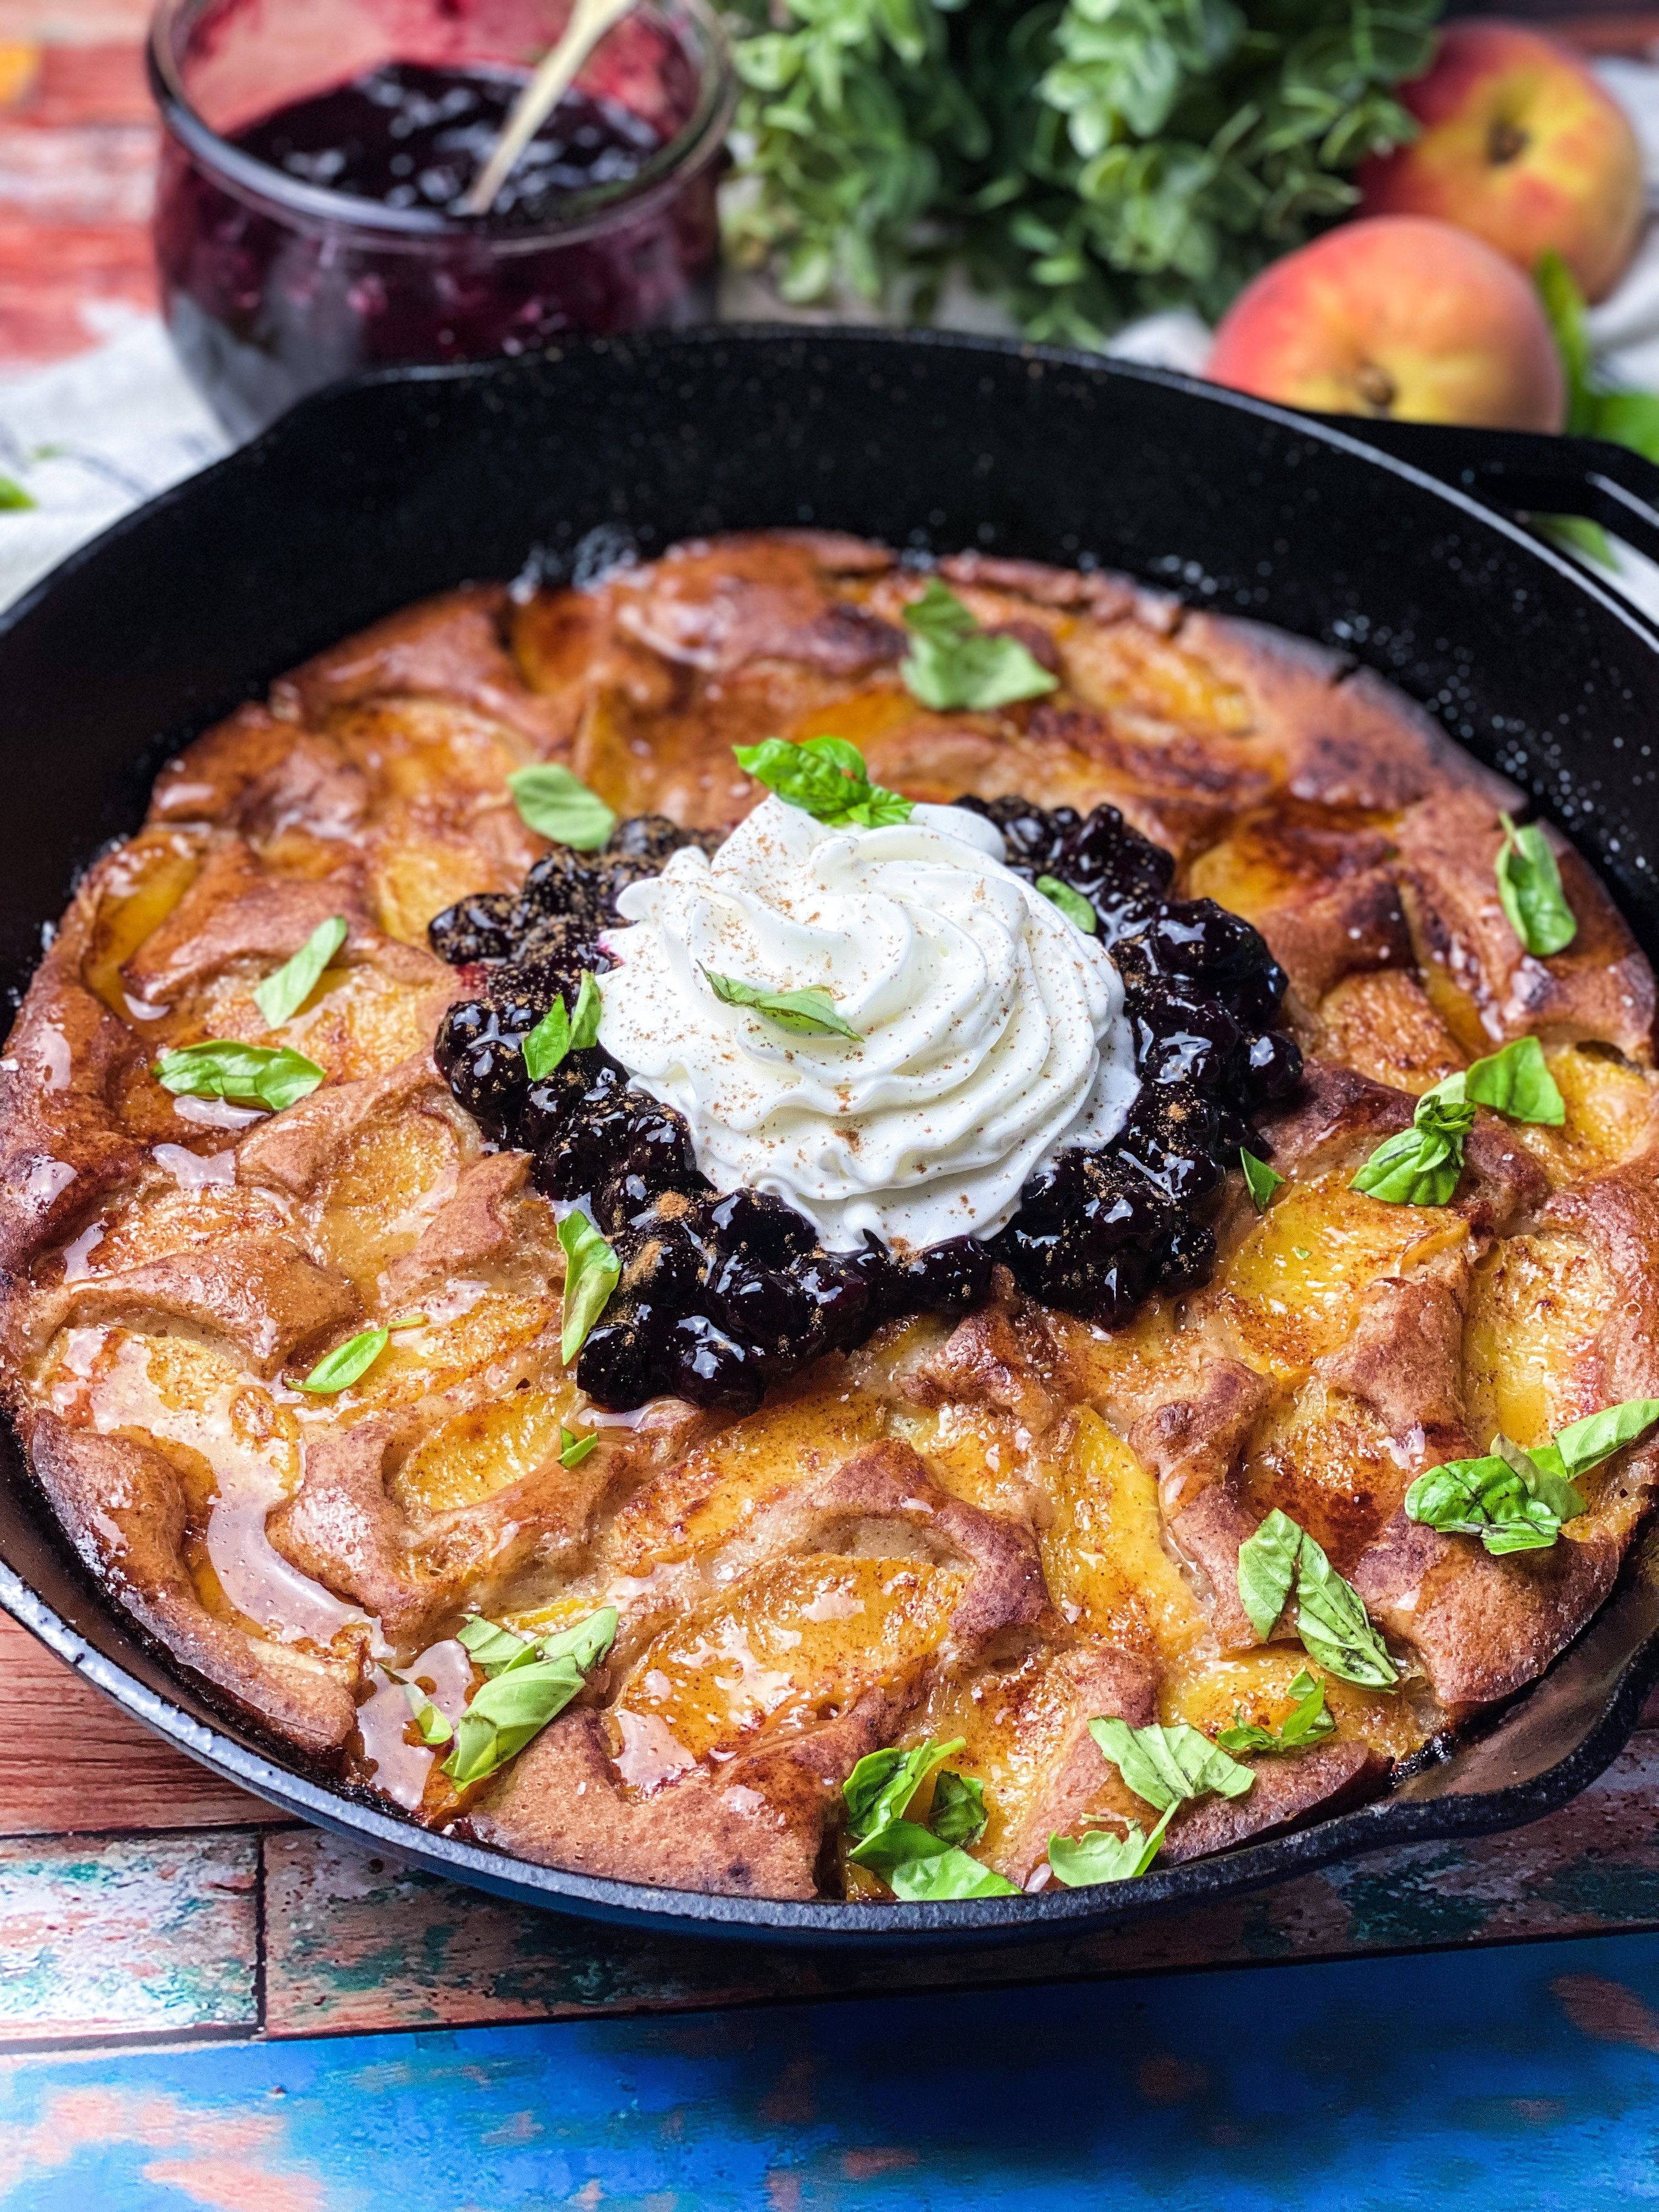 Peach Cobbler With Blueberry Compote